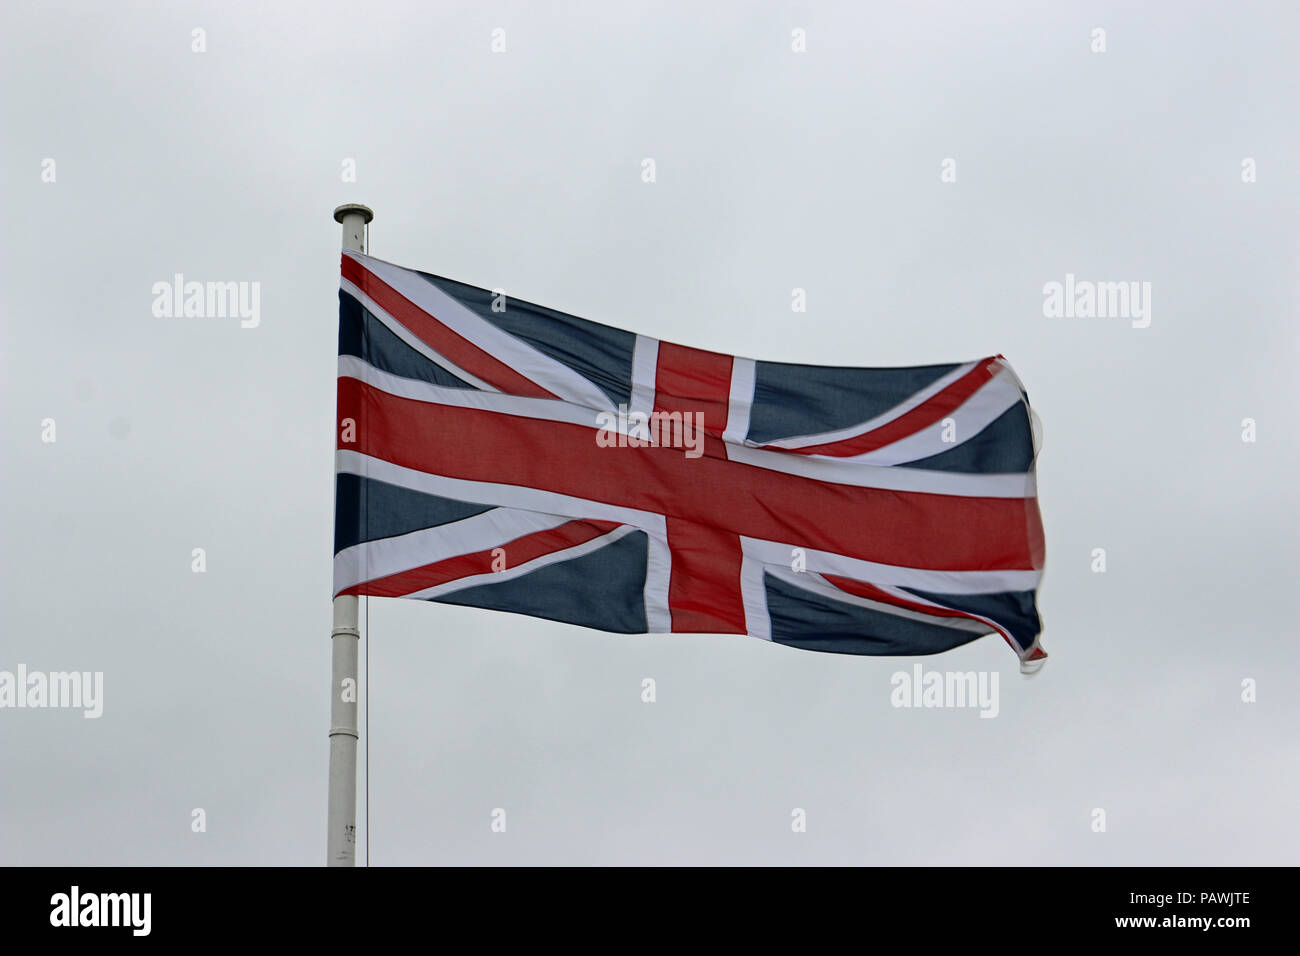 Union Jack flag fluttering in the wind on a white flagpole with a grey sky background. - Stock Image